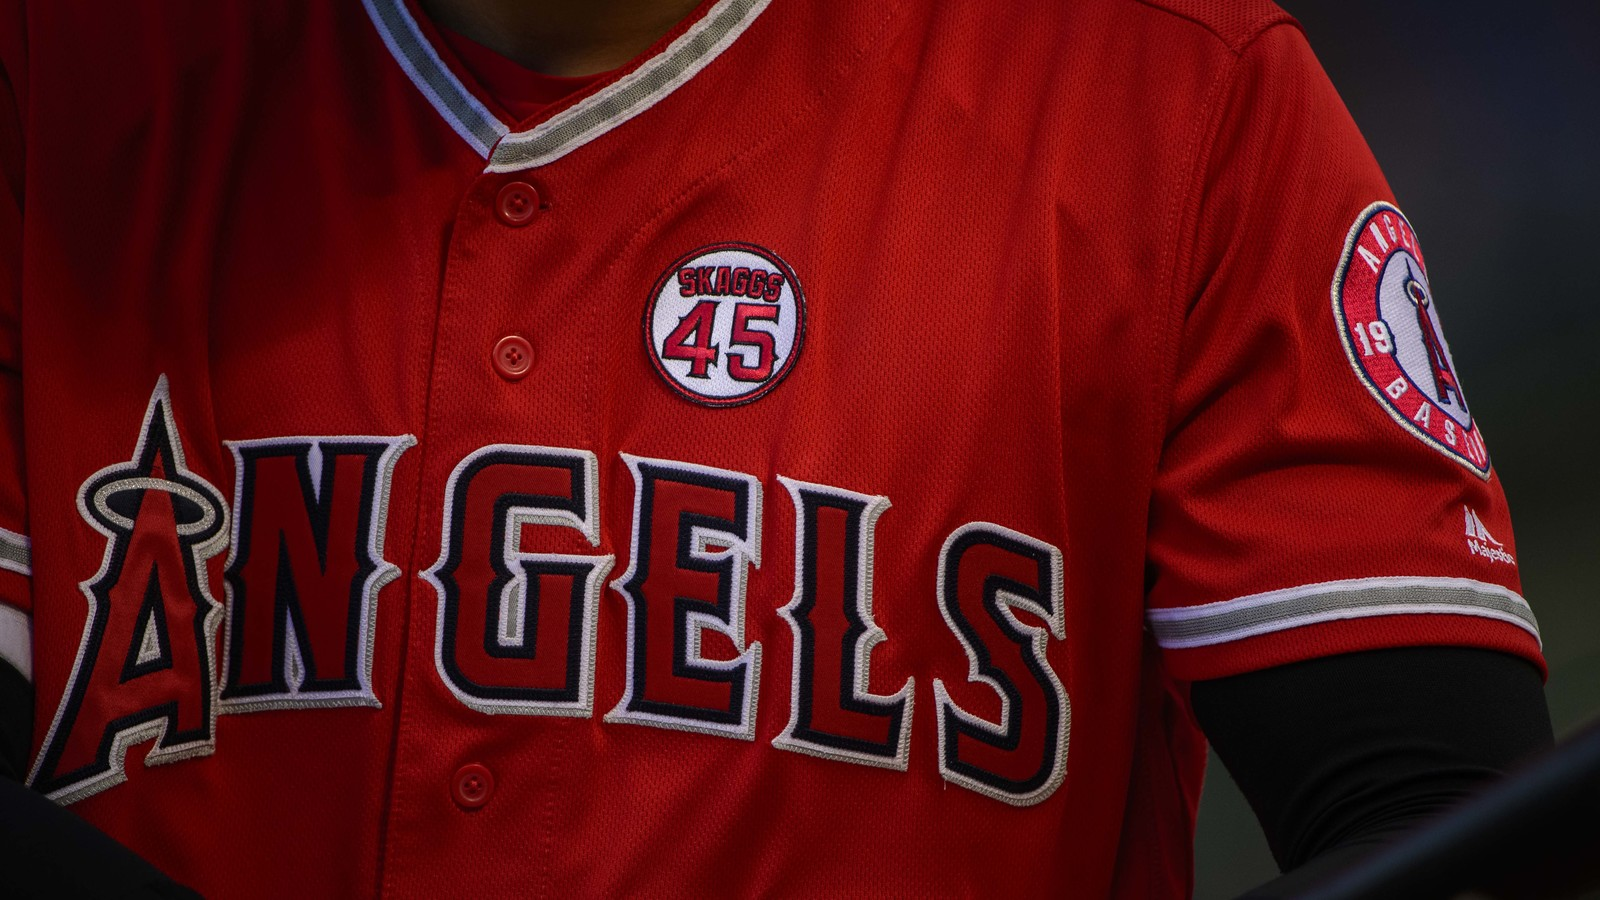 Mike Trout, Tommy La Stella to wear No. 45 during All-Star Game in tribute to Tyler Skaggs